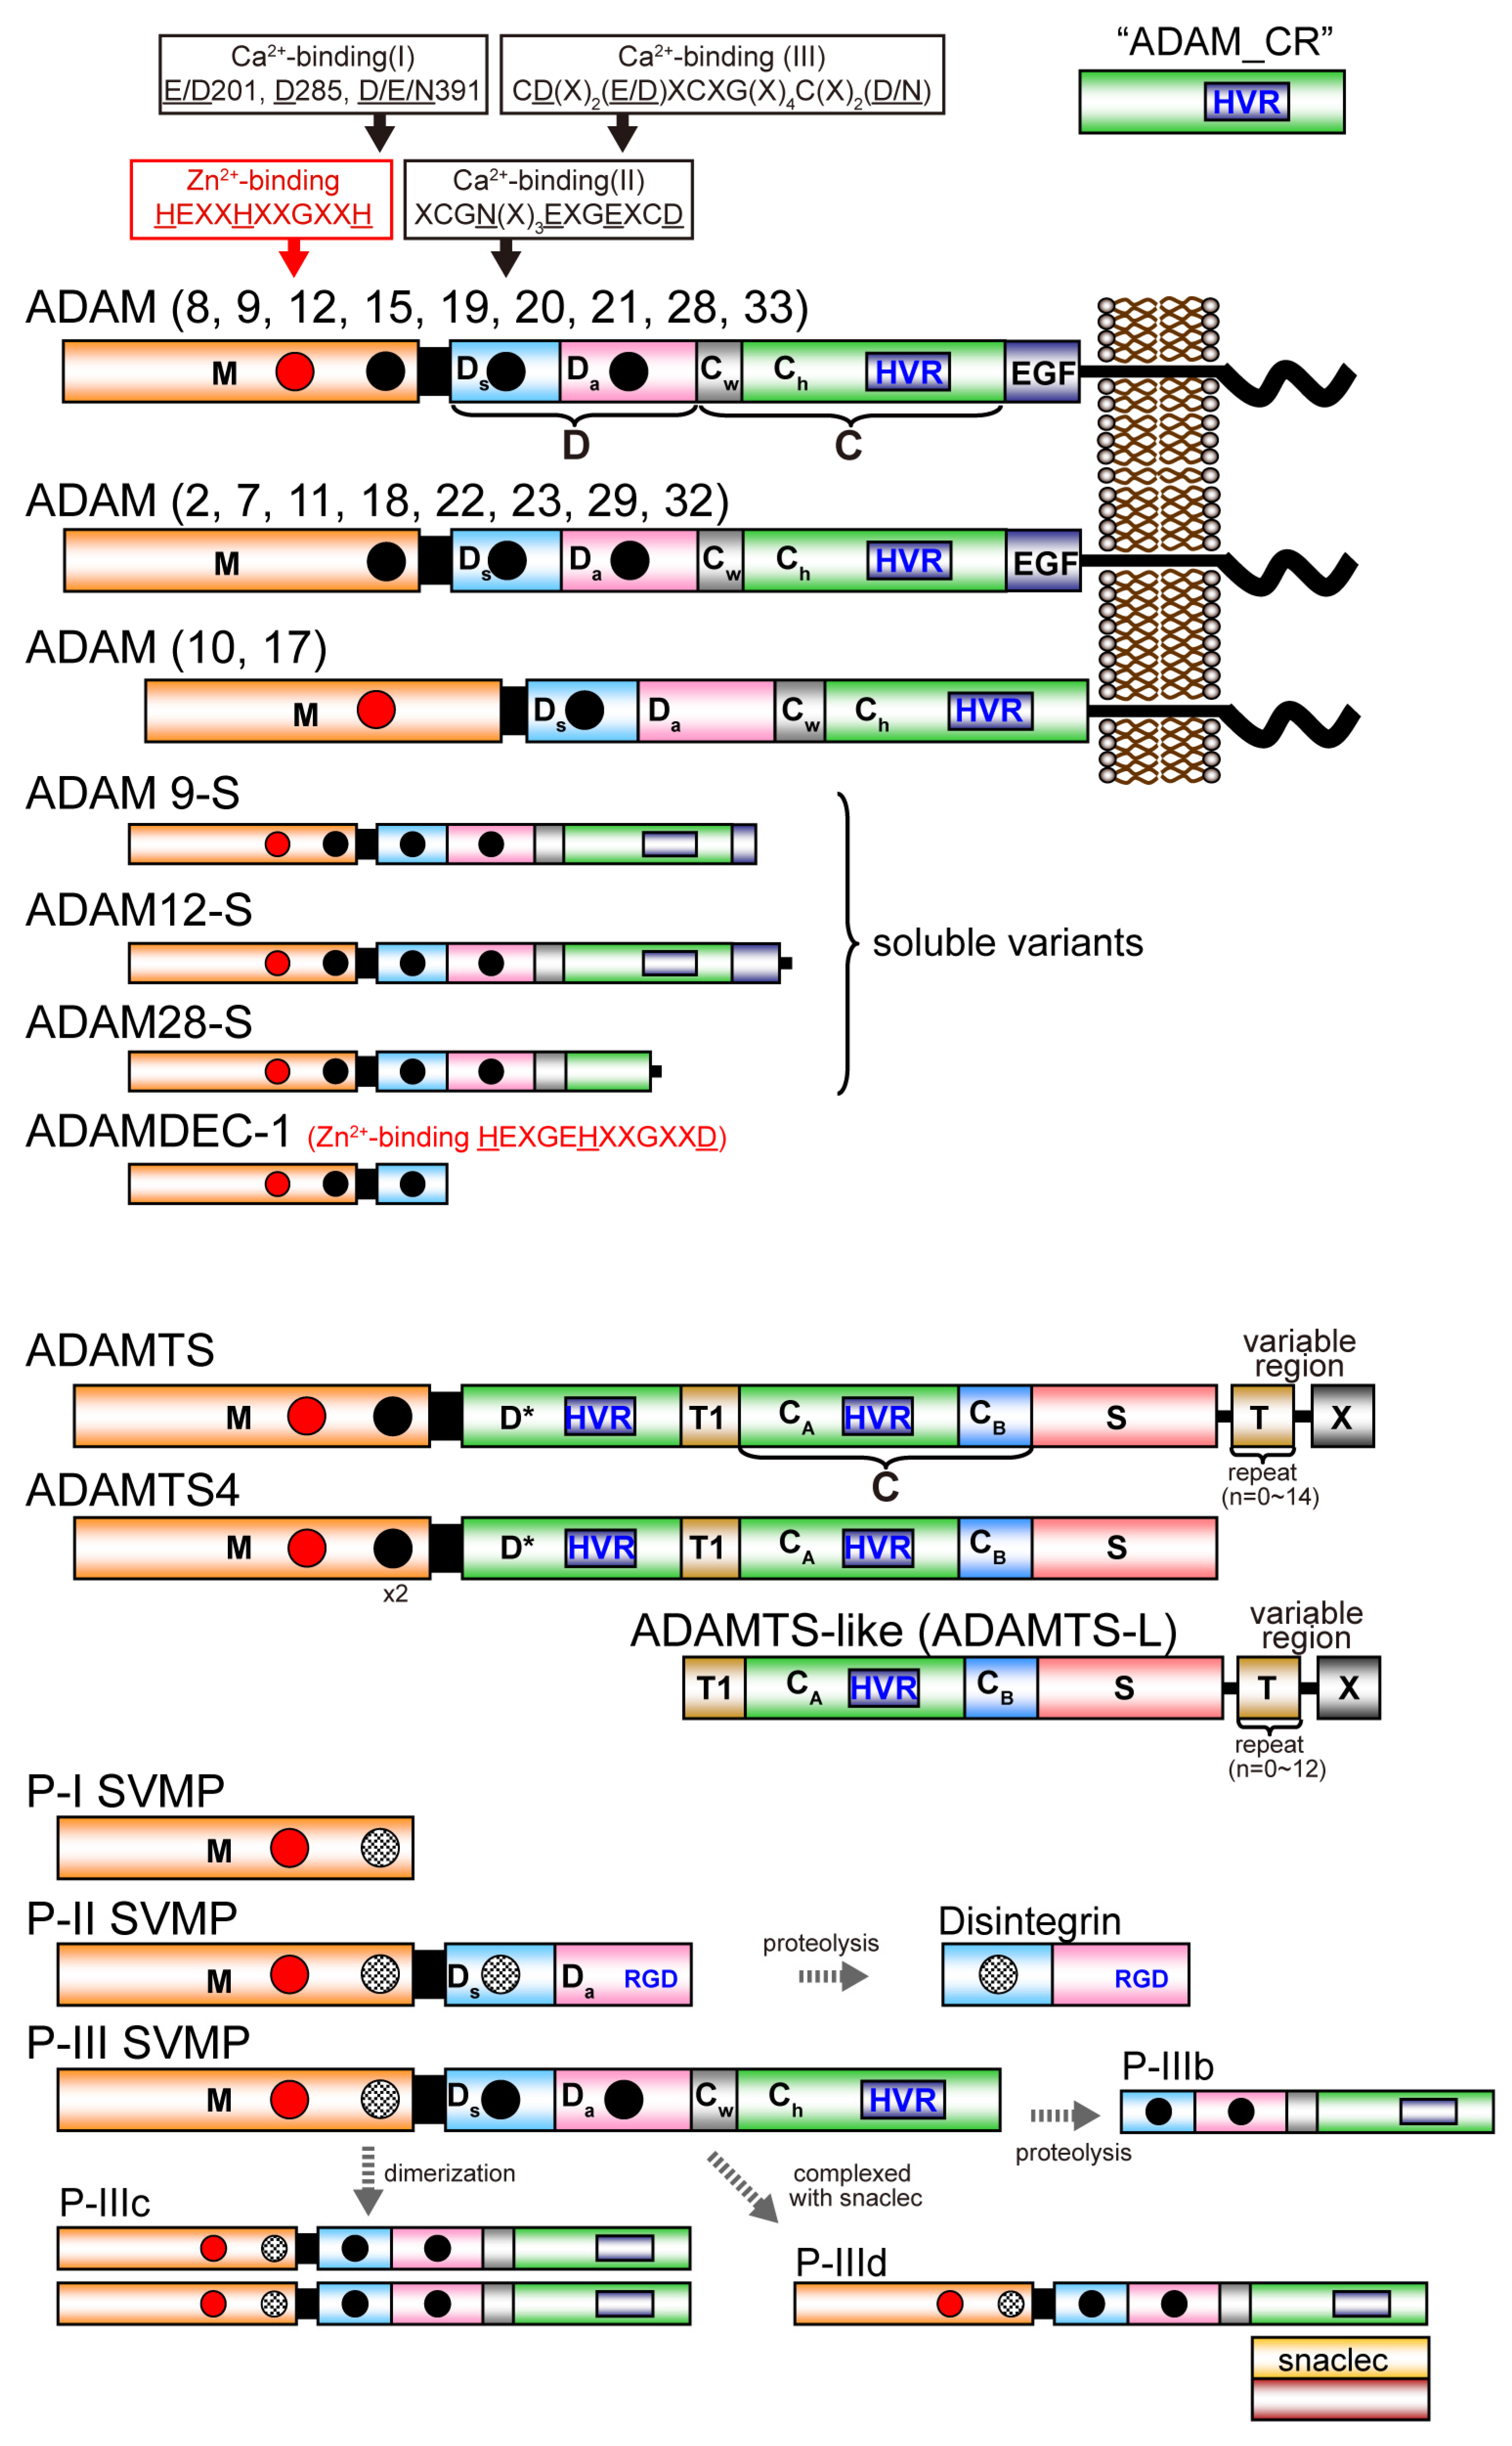 Toxins | Free Full-Text | ADAM and ADAMTS Family Proteins